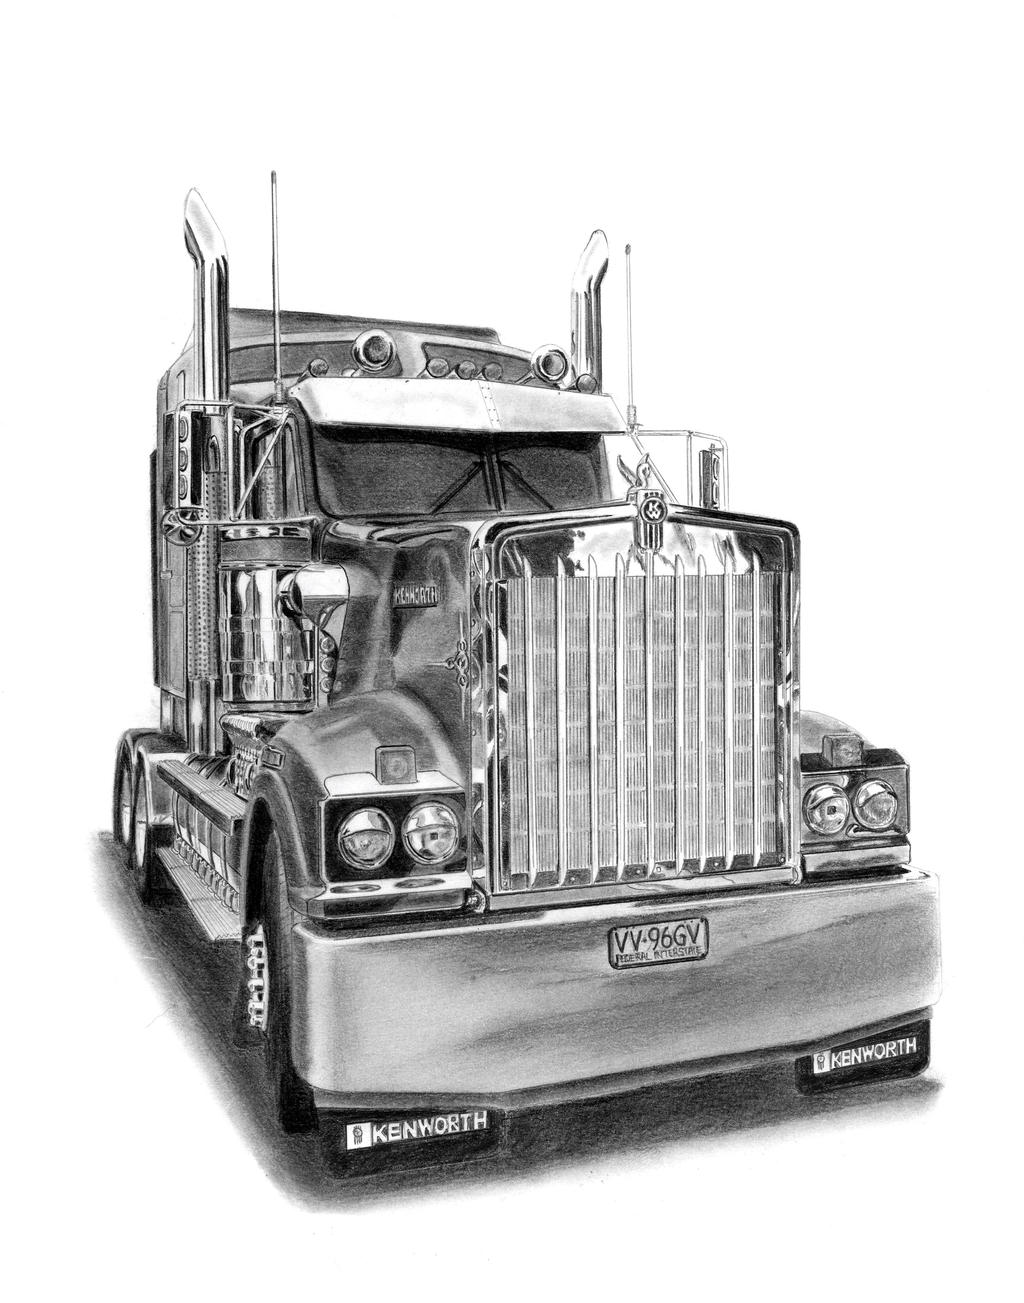 Kenworth T909 617319797 besides Template For A Train together with Numbersgeneraldetails moreover Numbersgeneraldetails besides Semi circle clipart. on semi truck outline